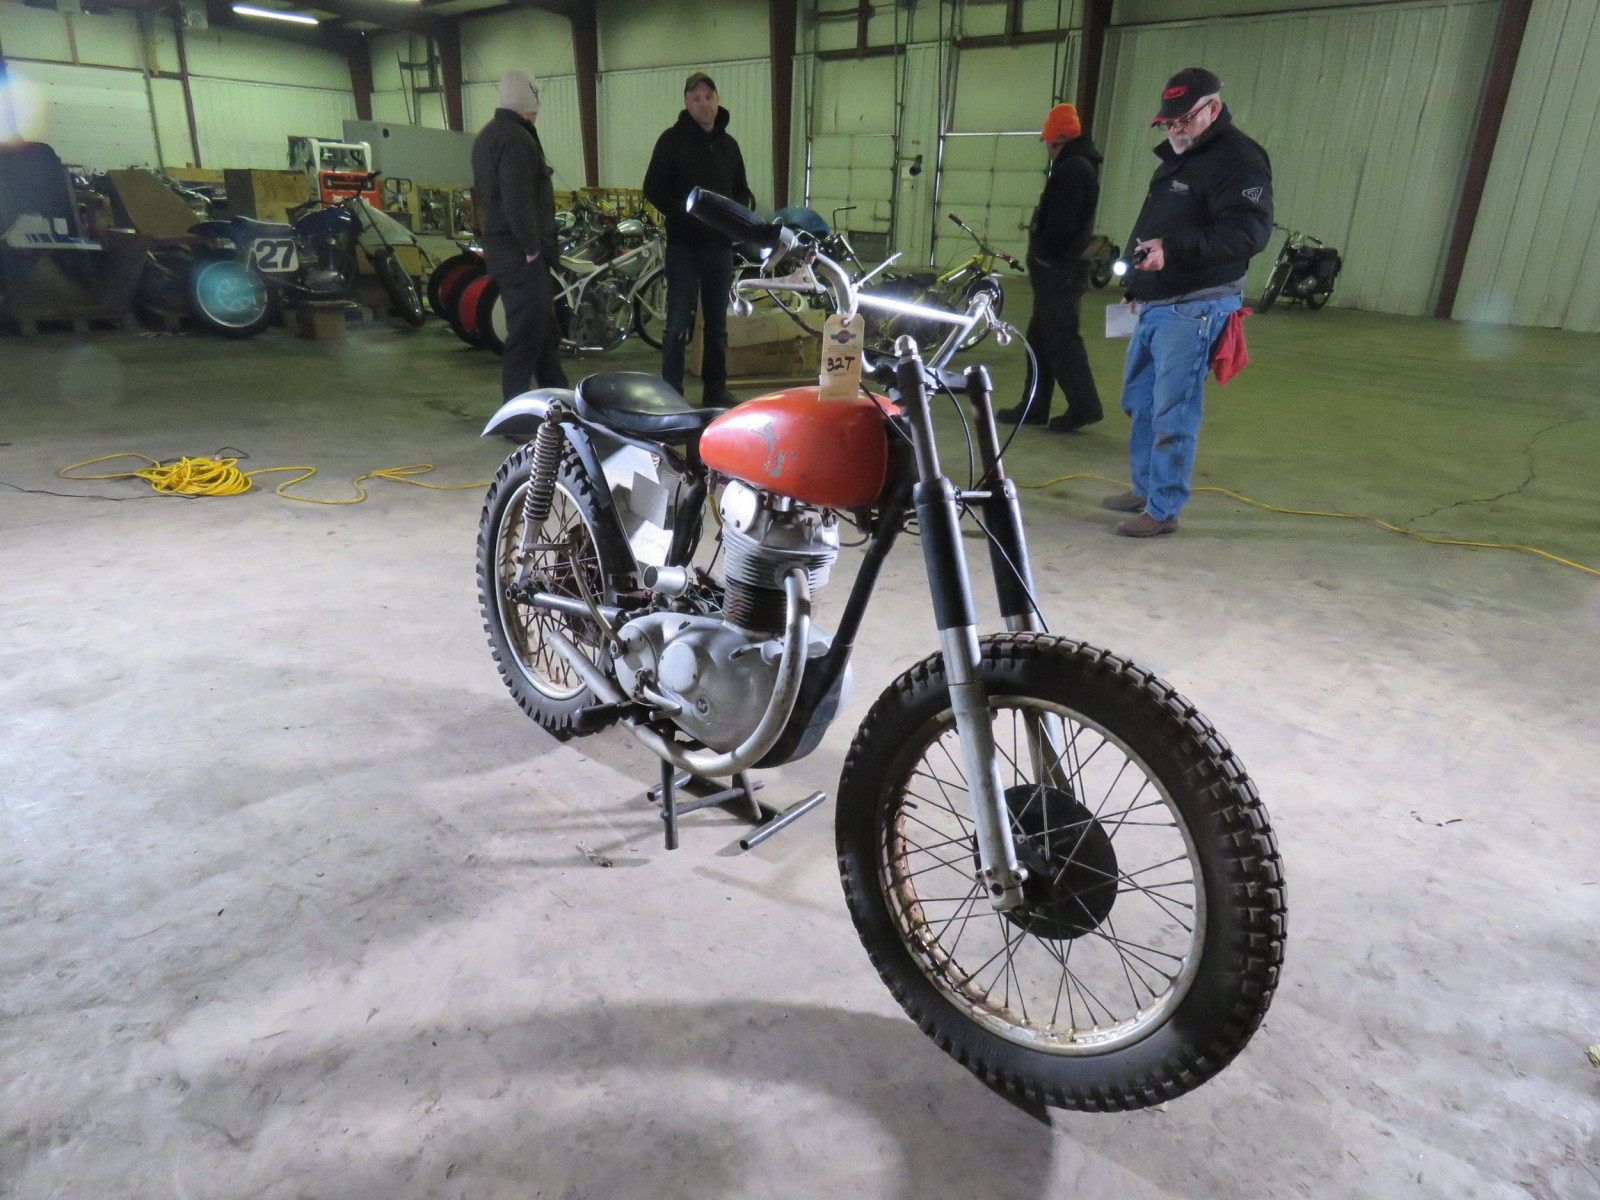 19625 Matchless G2 Motorcycle - Image 3